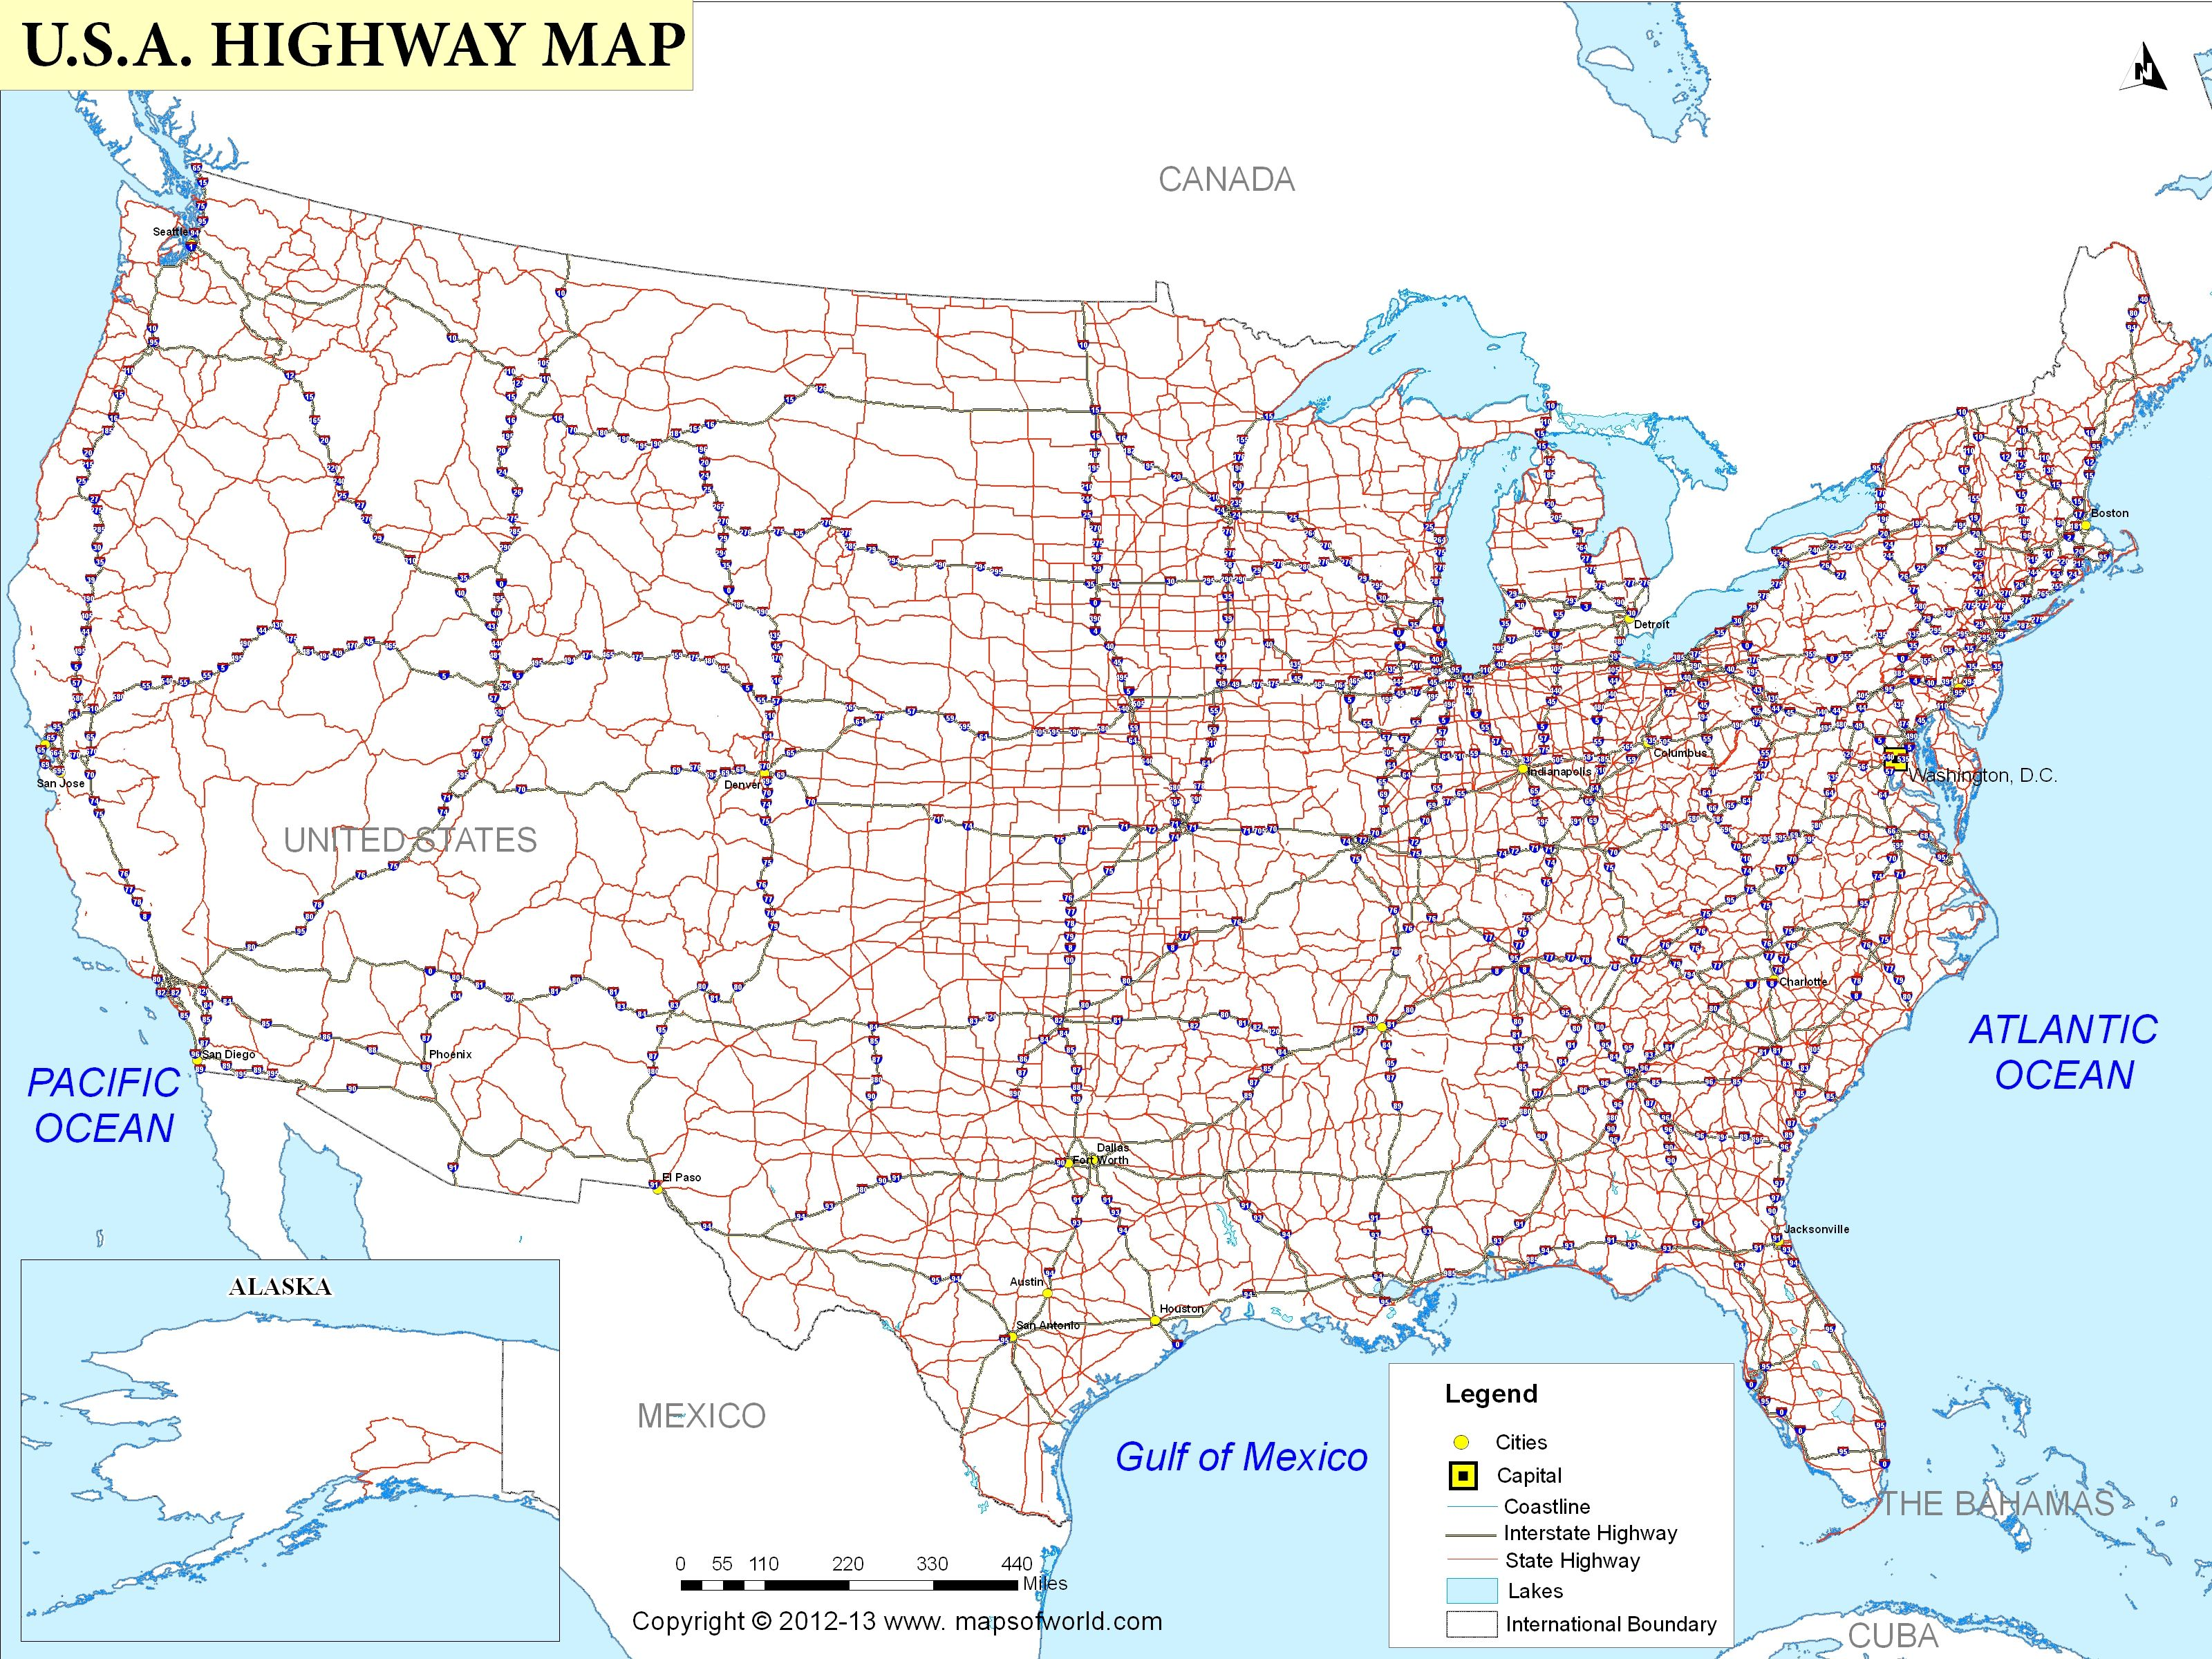 US Highway Map | Images | Pinterest | Map, Highway map and Us map